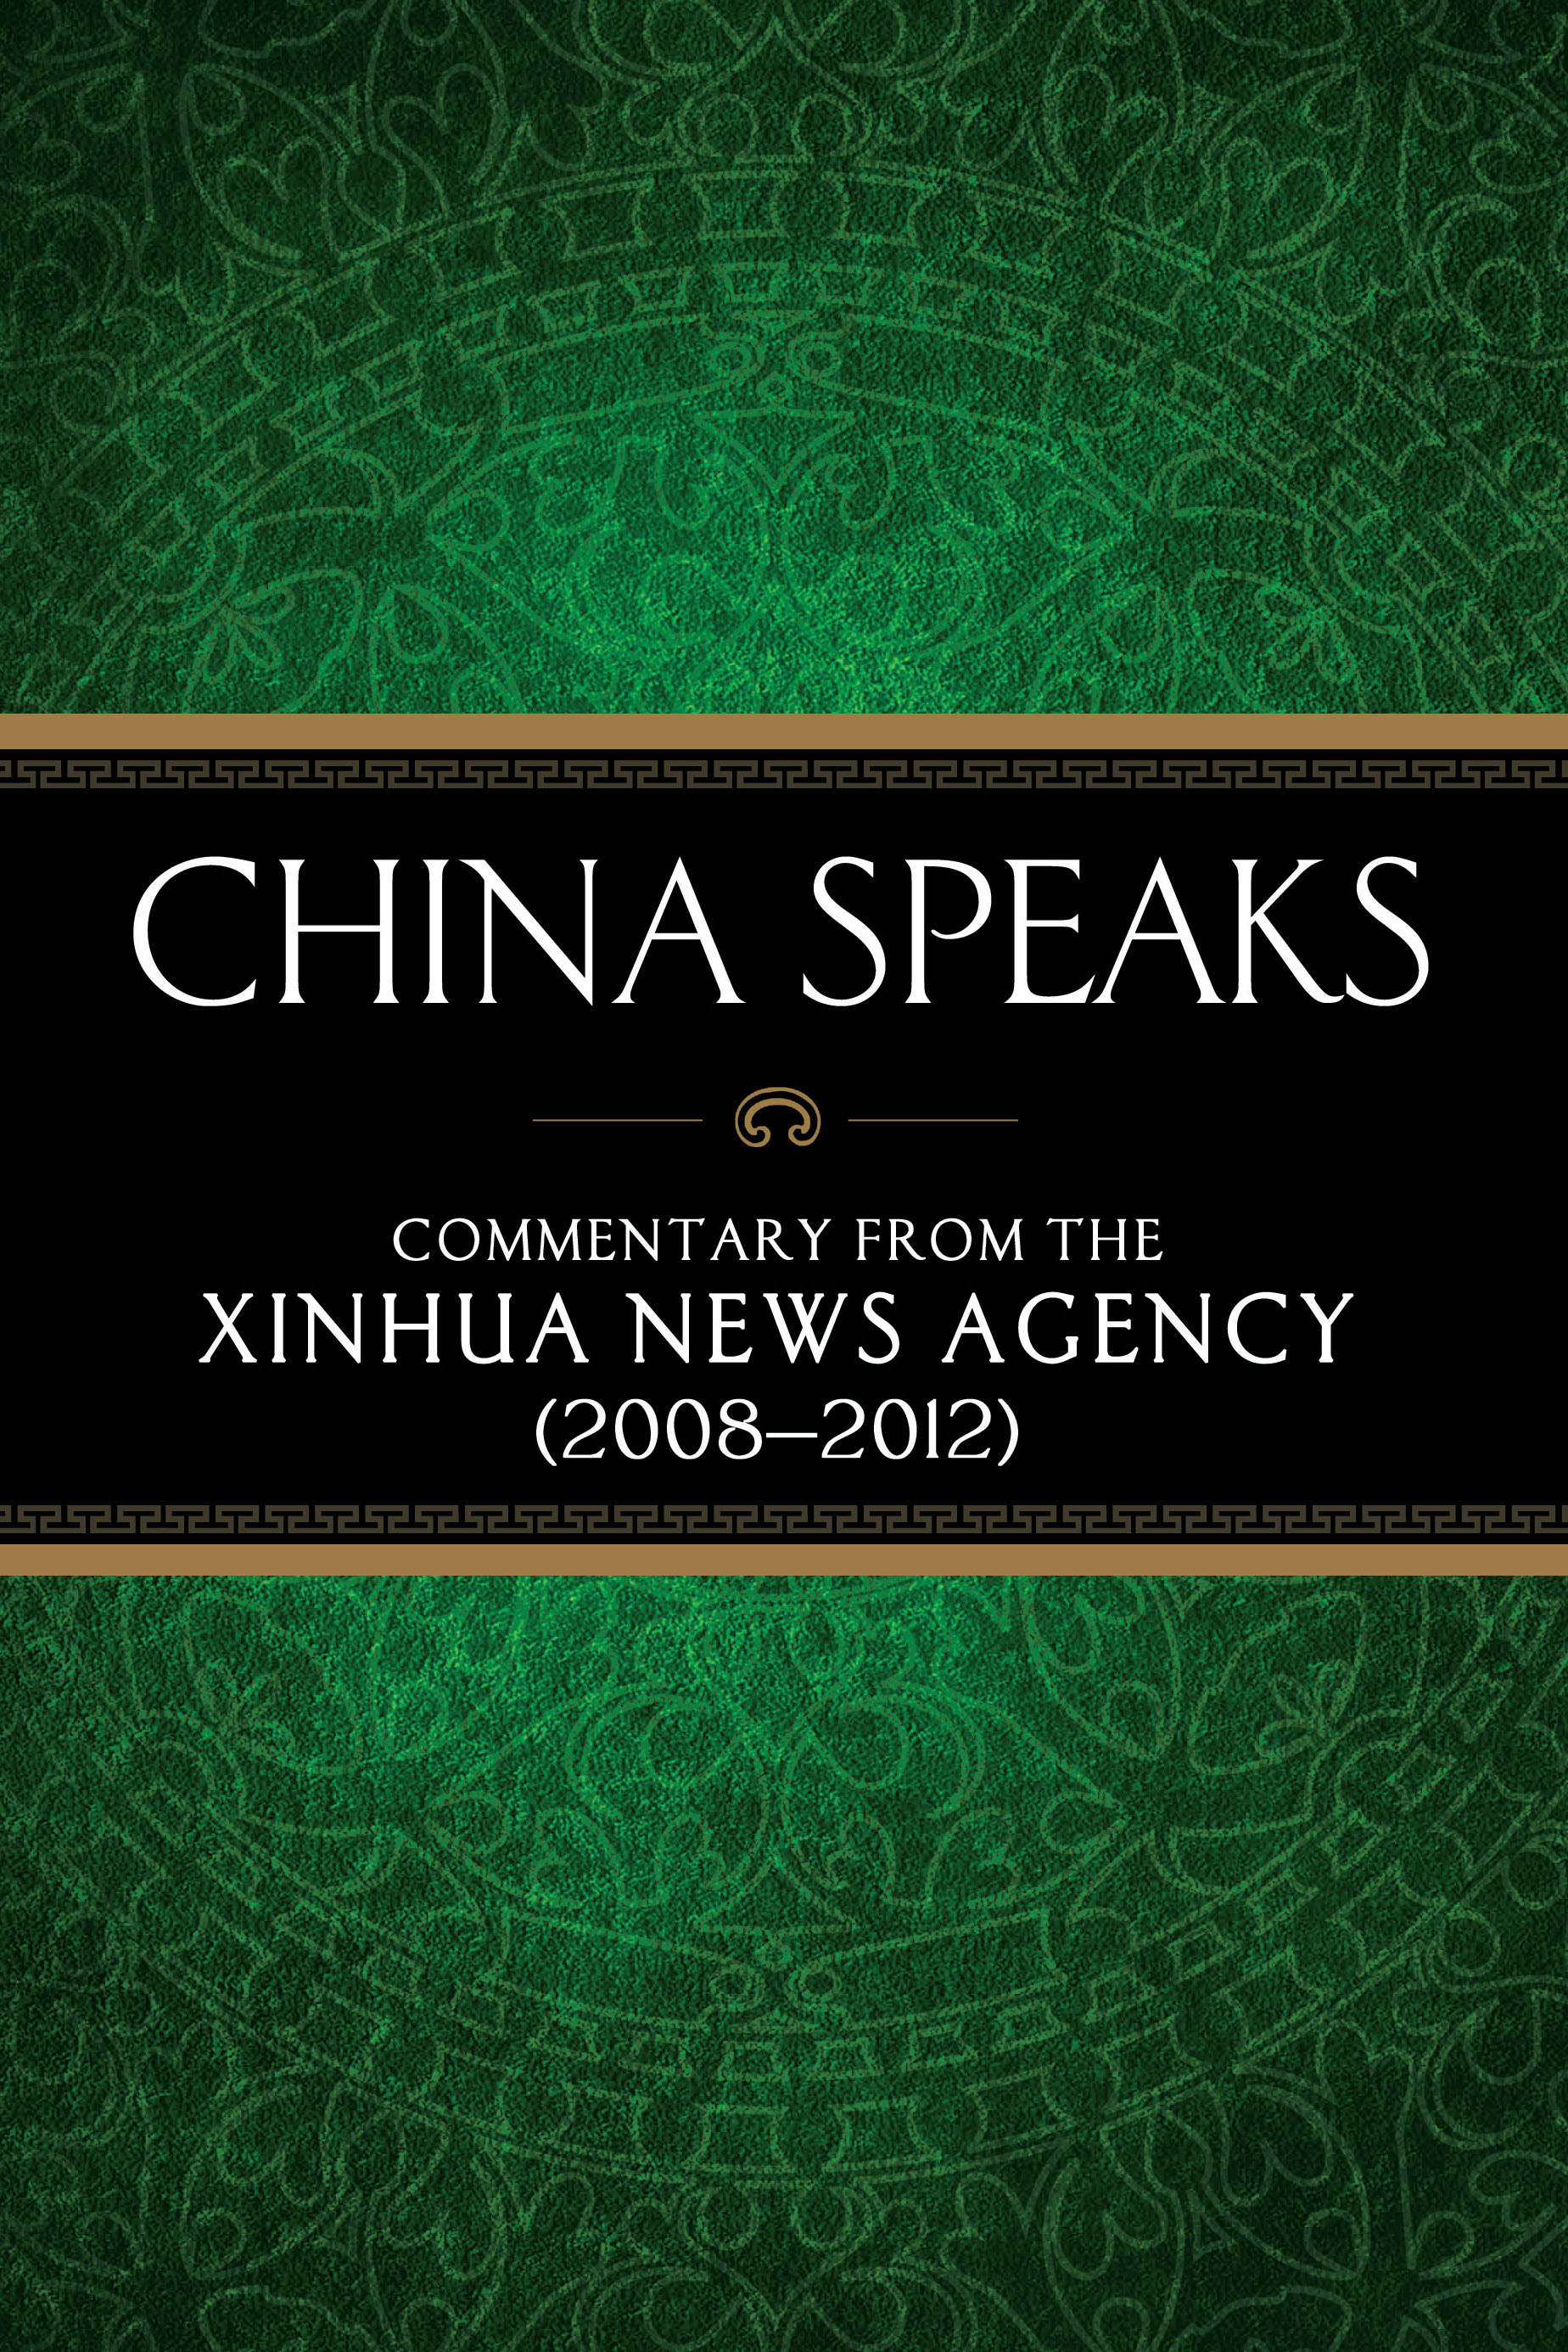 China Speaks: Commentary from the Xinhua News Agency (2008-2012)